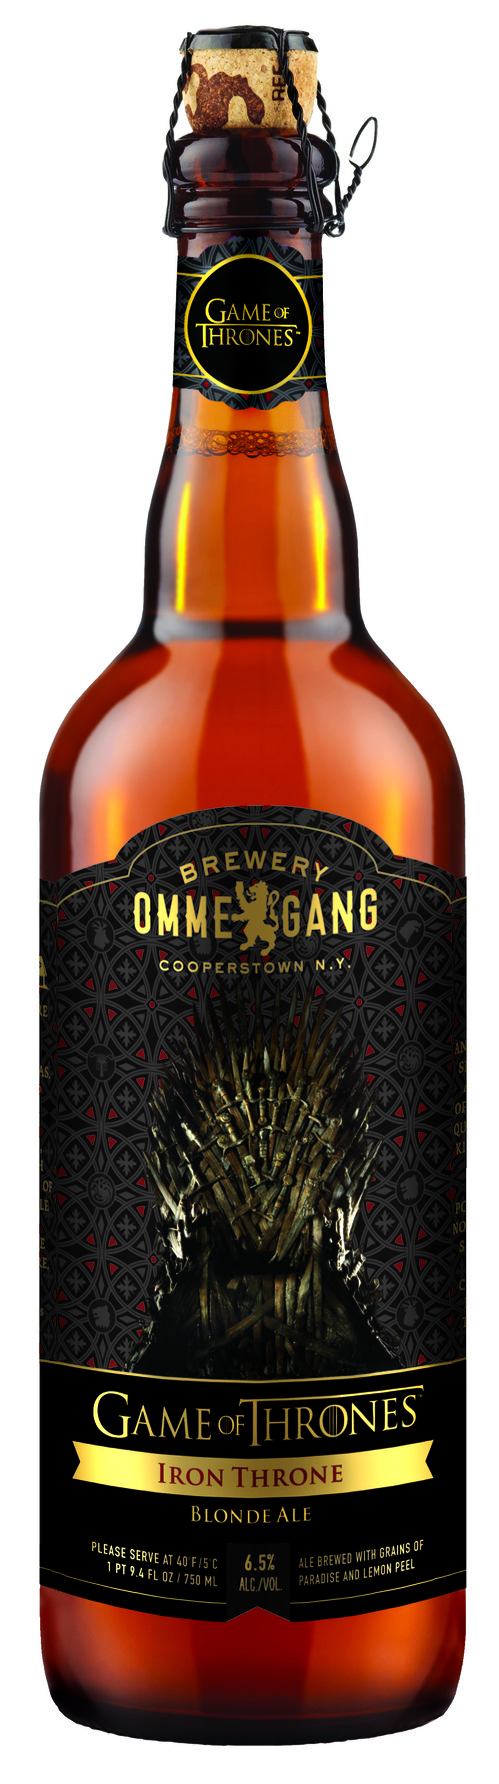 GOT Iron Throne Blonde Ale image released Dec 18 2012.jpg